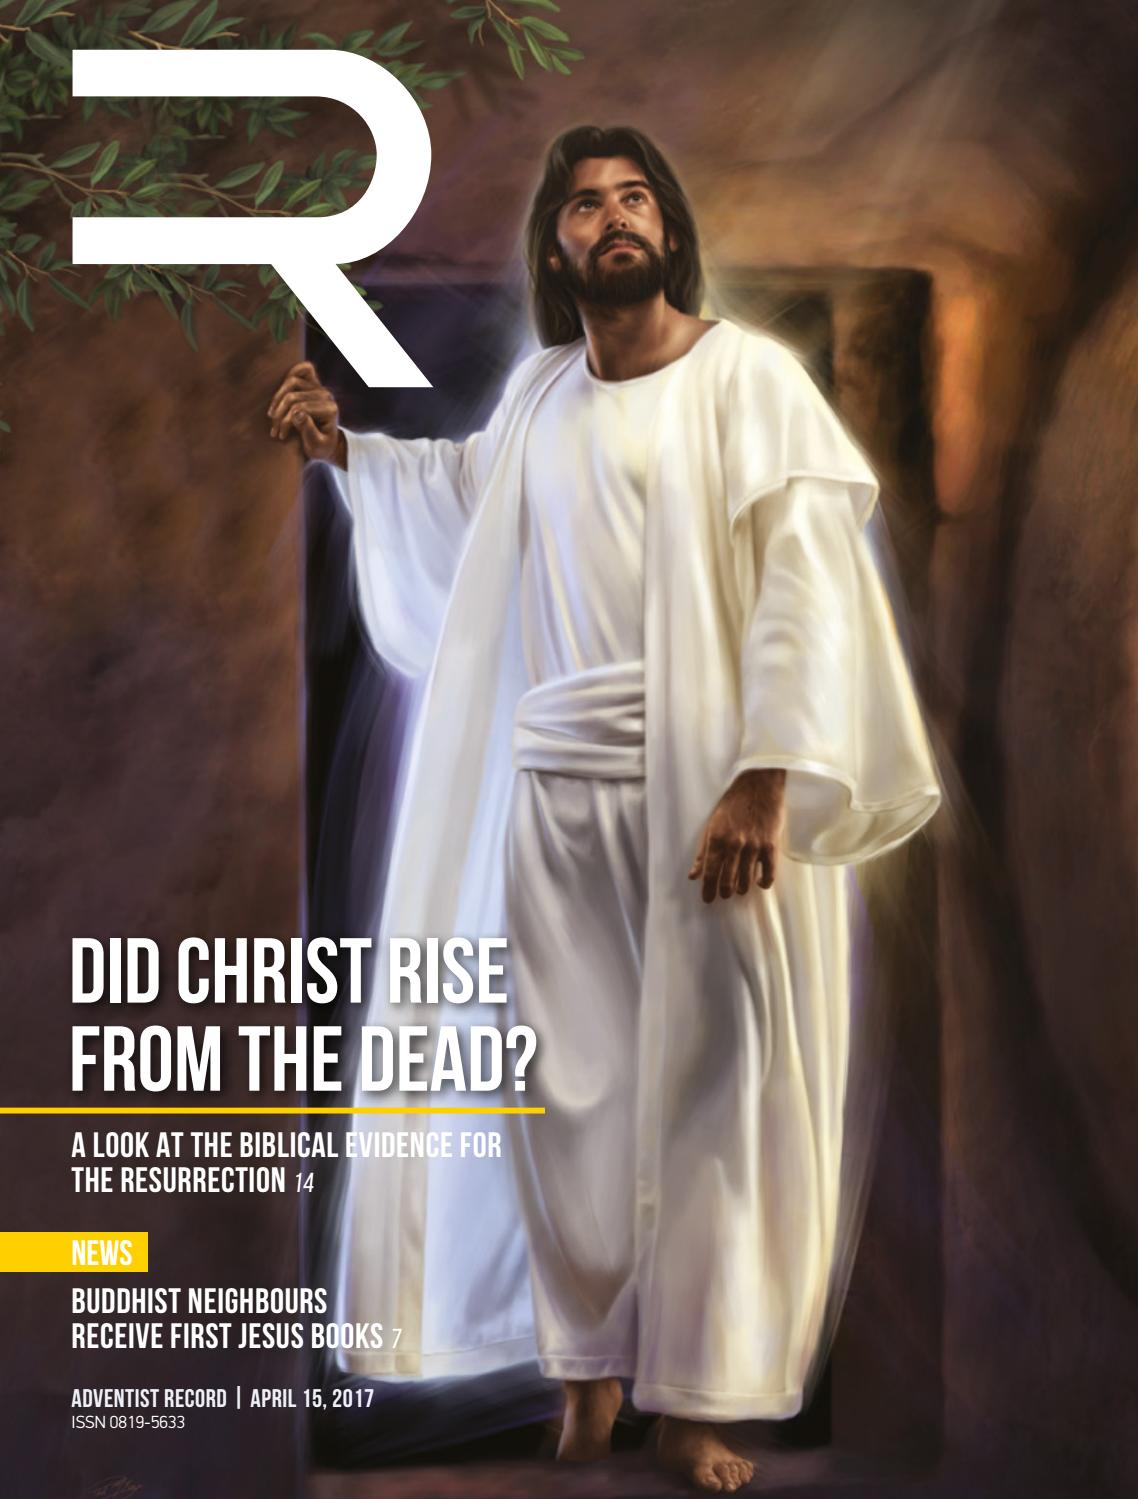 should the reserection of jesus be Why should his enemies do the very thing that would be most likely to spread the report of his resurrection as chrysostom said, if the body had it is, of course, quite clear that the resurrection body of jesus was not exactly the same as when it was put in the tomb, but it is equally clear that.